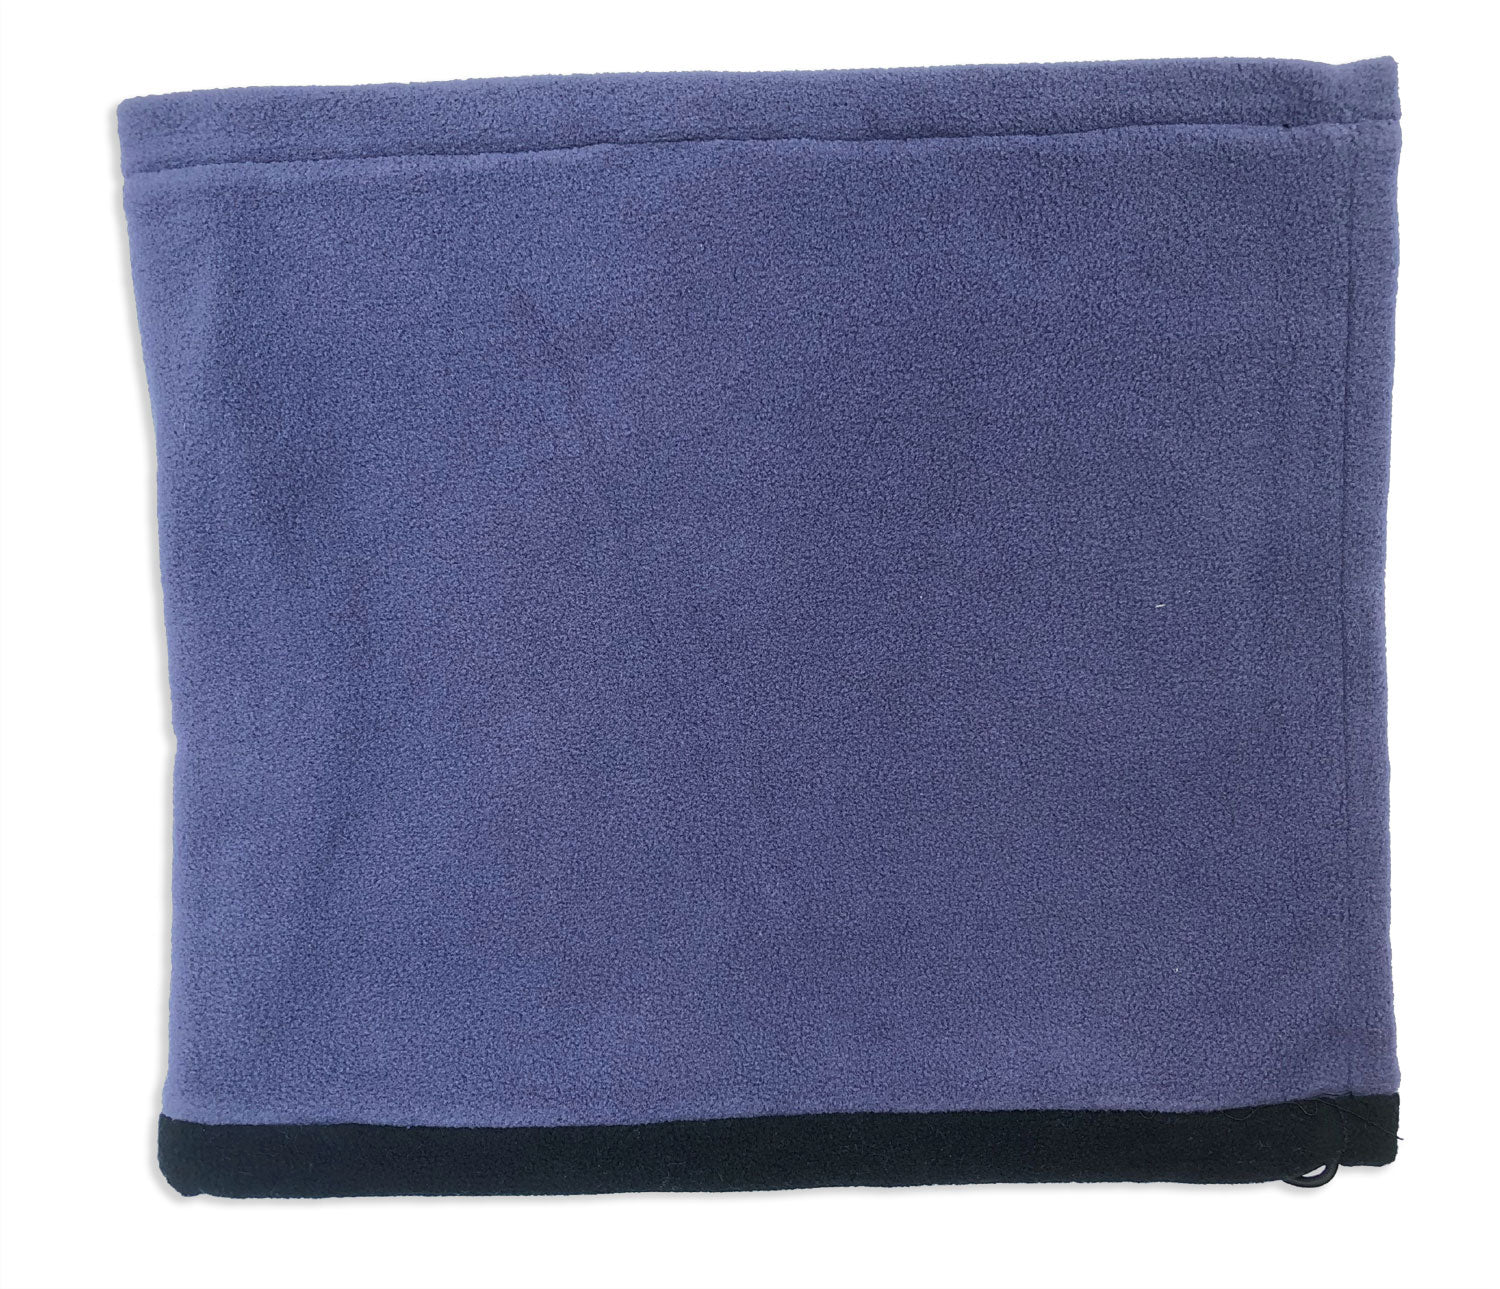 Lavender Gelert Micro Thermal Fleece Neck Warmer